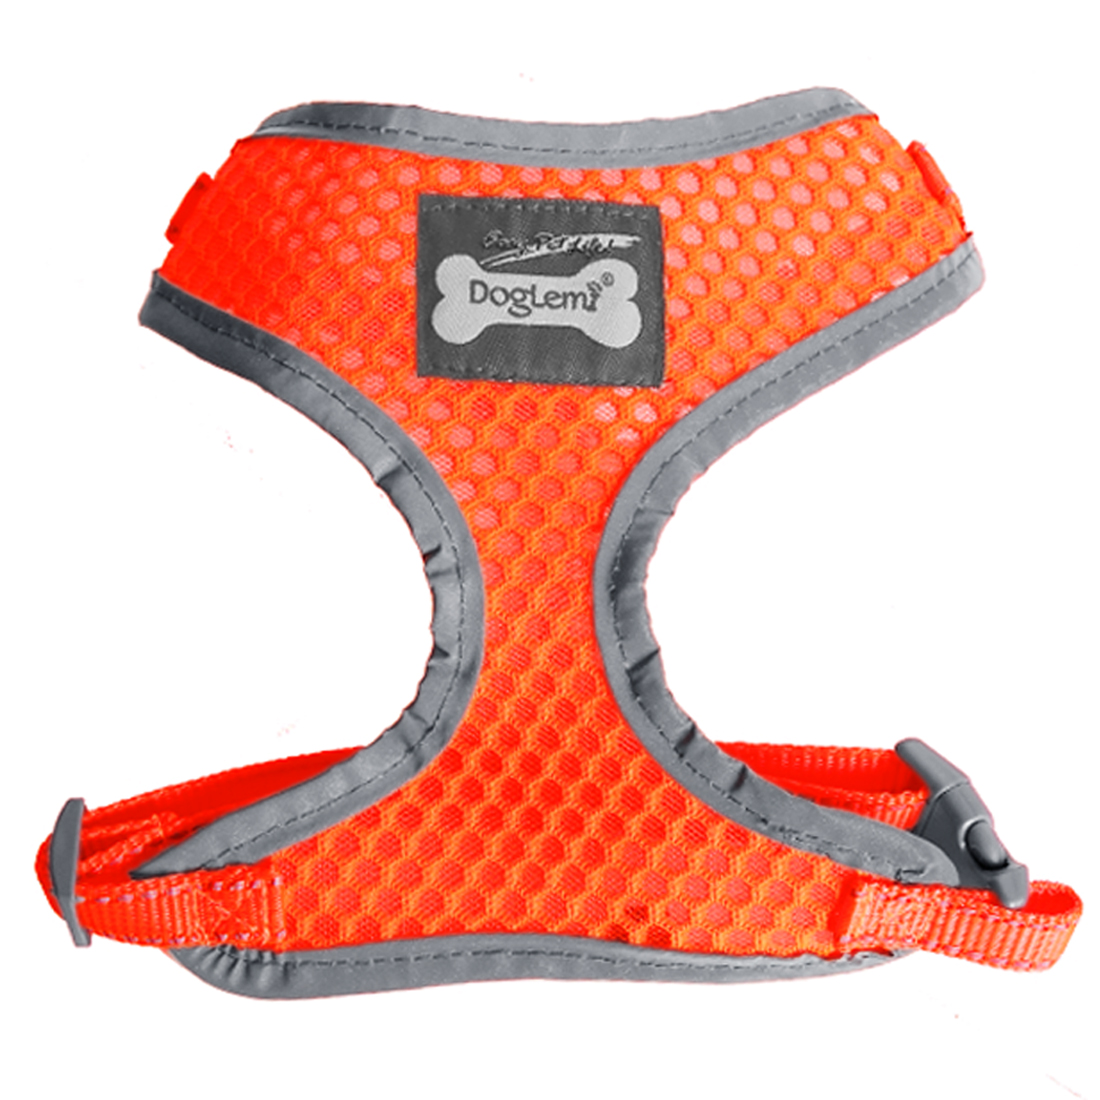 Comfort Control Dog Harness Adjustable Breathable Soft Air Mesh Puppy Harnesses Walk Collar Reflective Vest Orange S